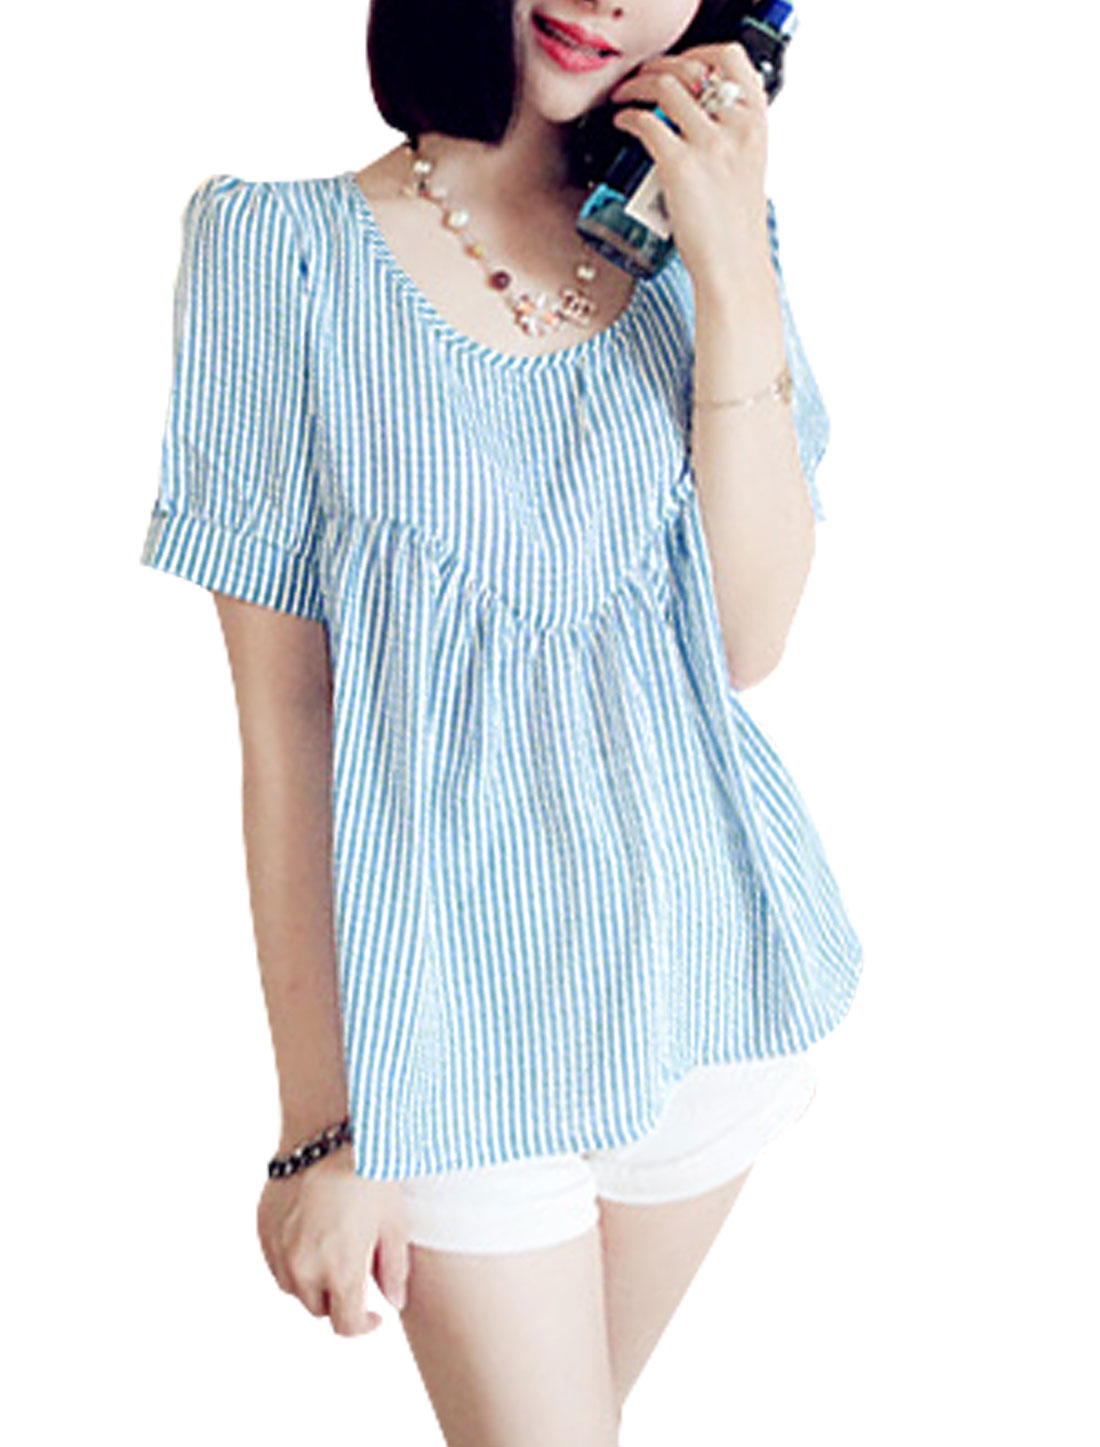 Lady Vertical Striped Plaids Design Semi Sheer Loose Top White Blue XS